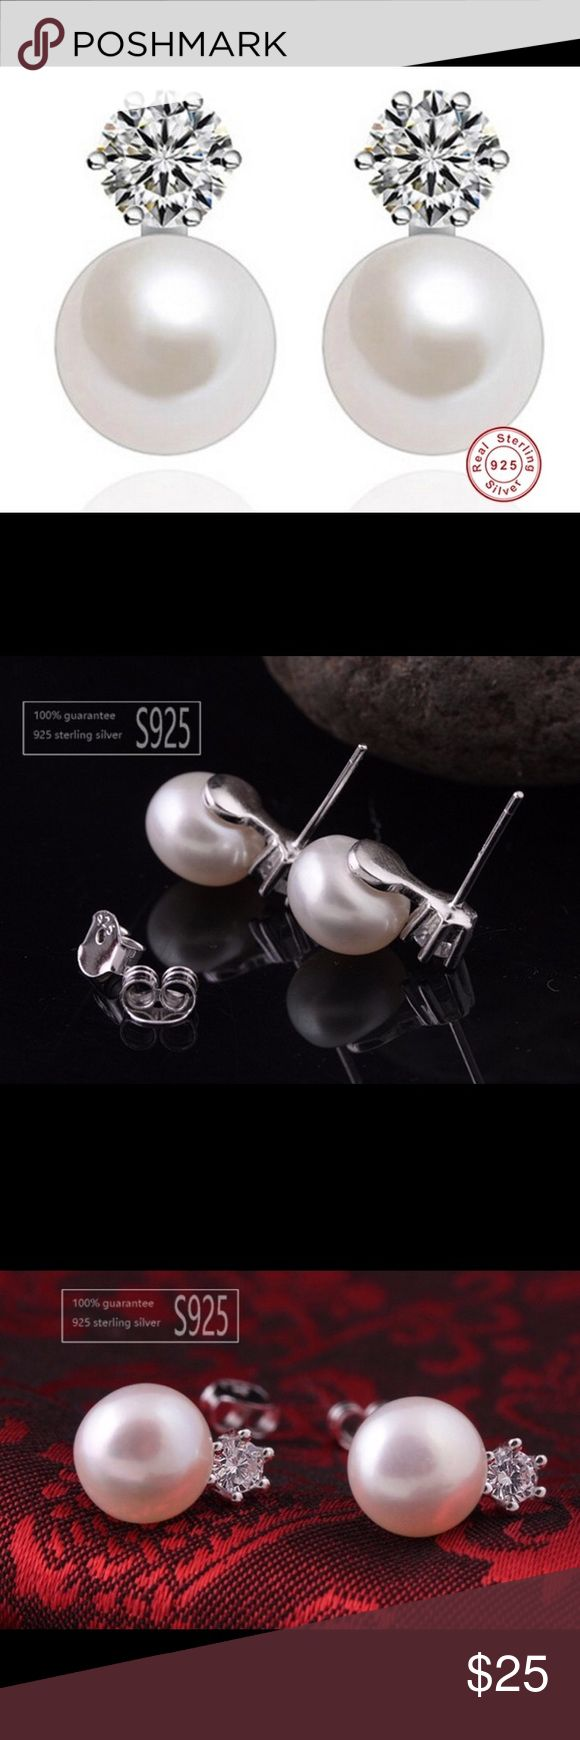 "100% Natural Pearl 925 Silver Stud Earrings Handmade Elegant 100% 9-9.5mm Natural Freshwater Pearl Solid 925 Silver Classic Princess CZ Diamond Stud Earrings   Colors: white pearl   Material:   100% AAAA top quality freshwater pearl, highly luster.  Pearl shape: semi round  Pearl size: 9-9.5mm Measure: 14mm/0.56""  100% high quality solid 925 sterling silver, 360 degree grinding & polishing w/ 3 times rhodium plating to achieve the white gold look and protect the jewelry   AAA top quality…"